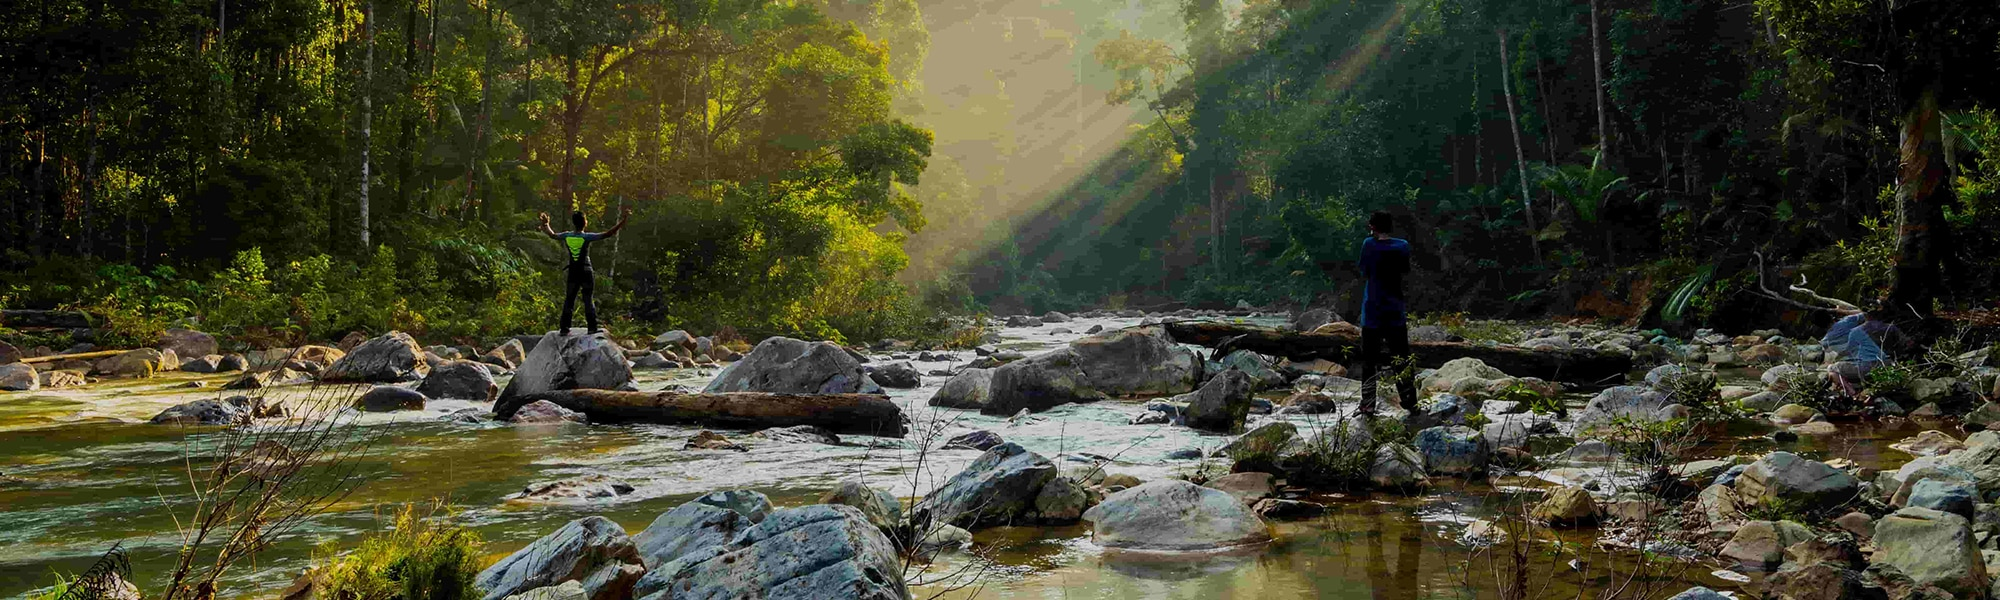 TheBest Ecotourism Experiences in Malaysia